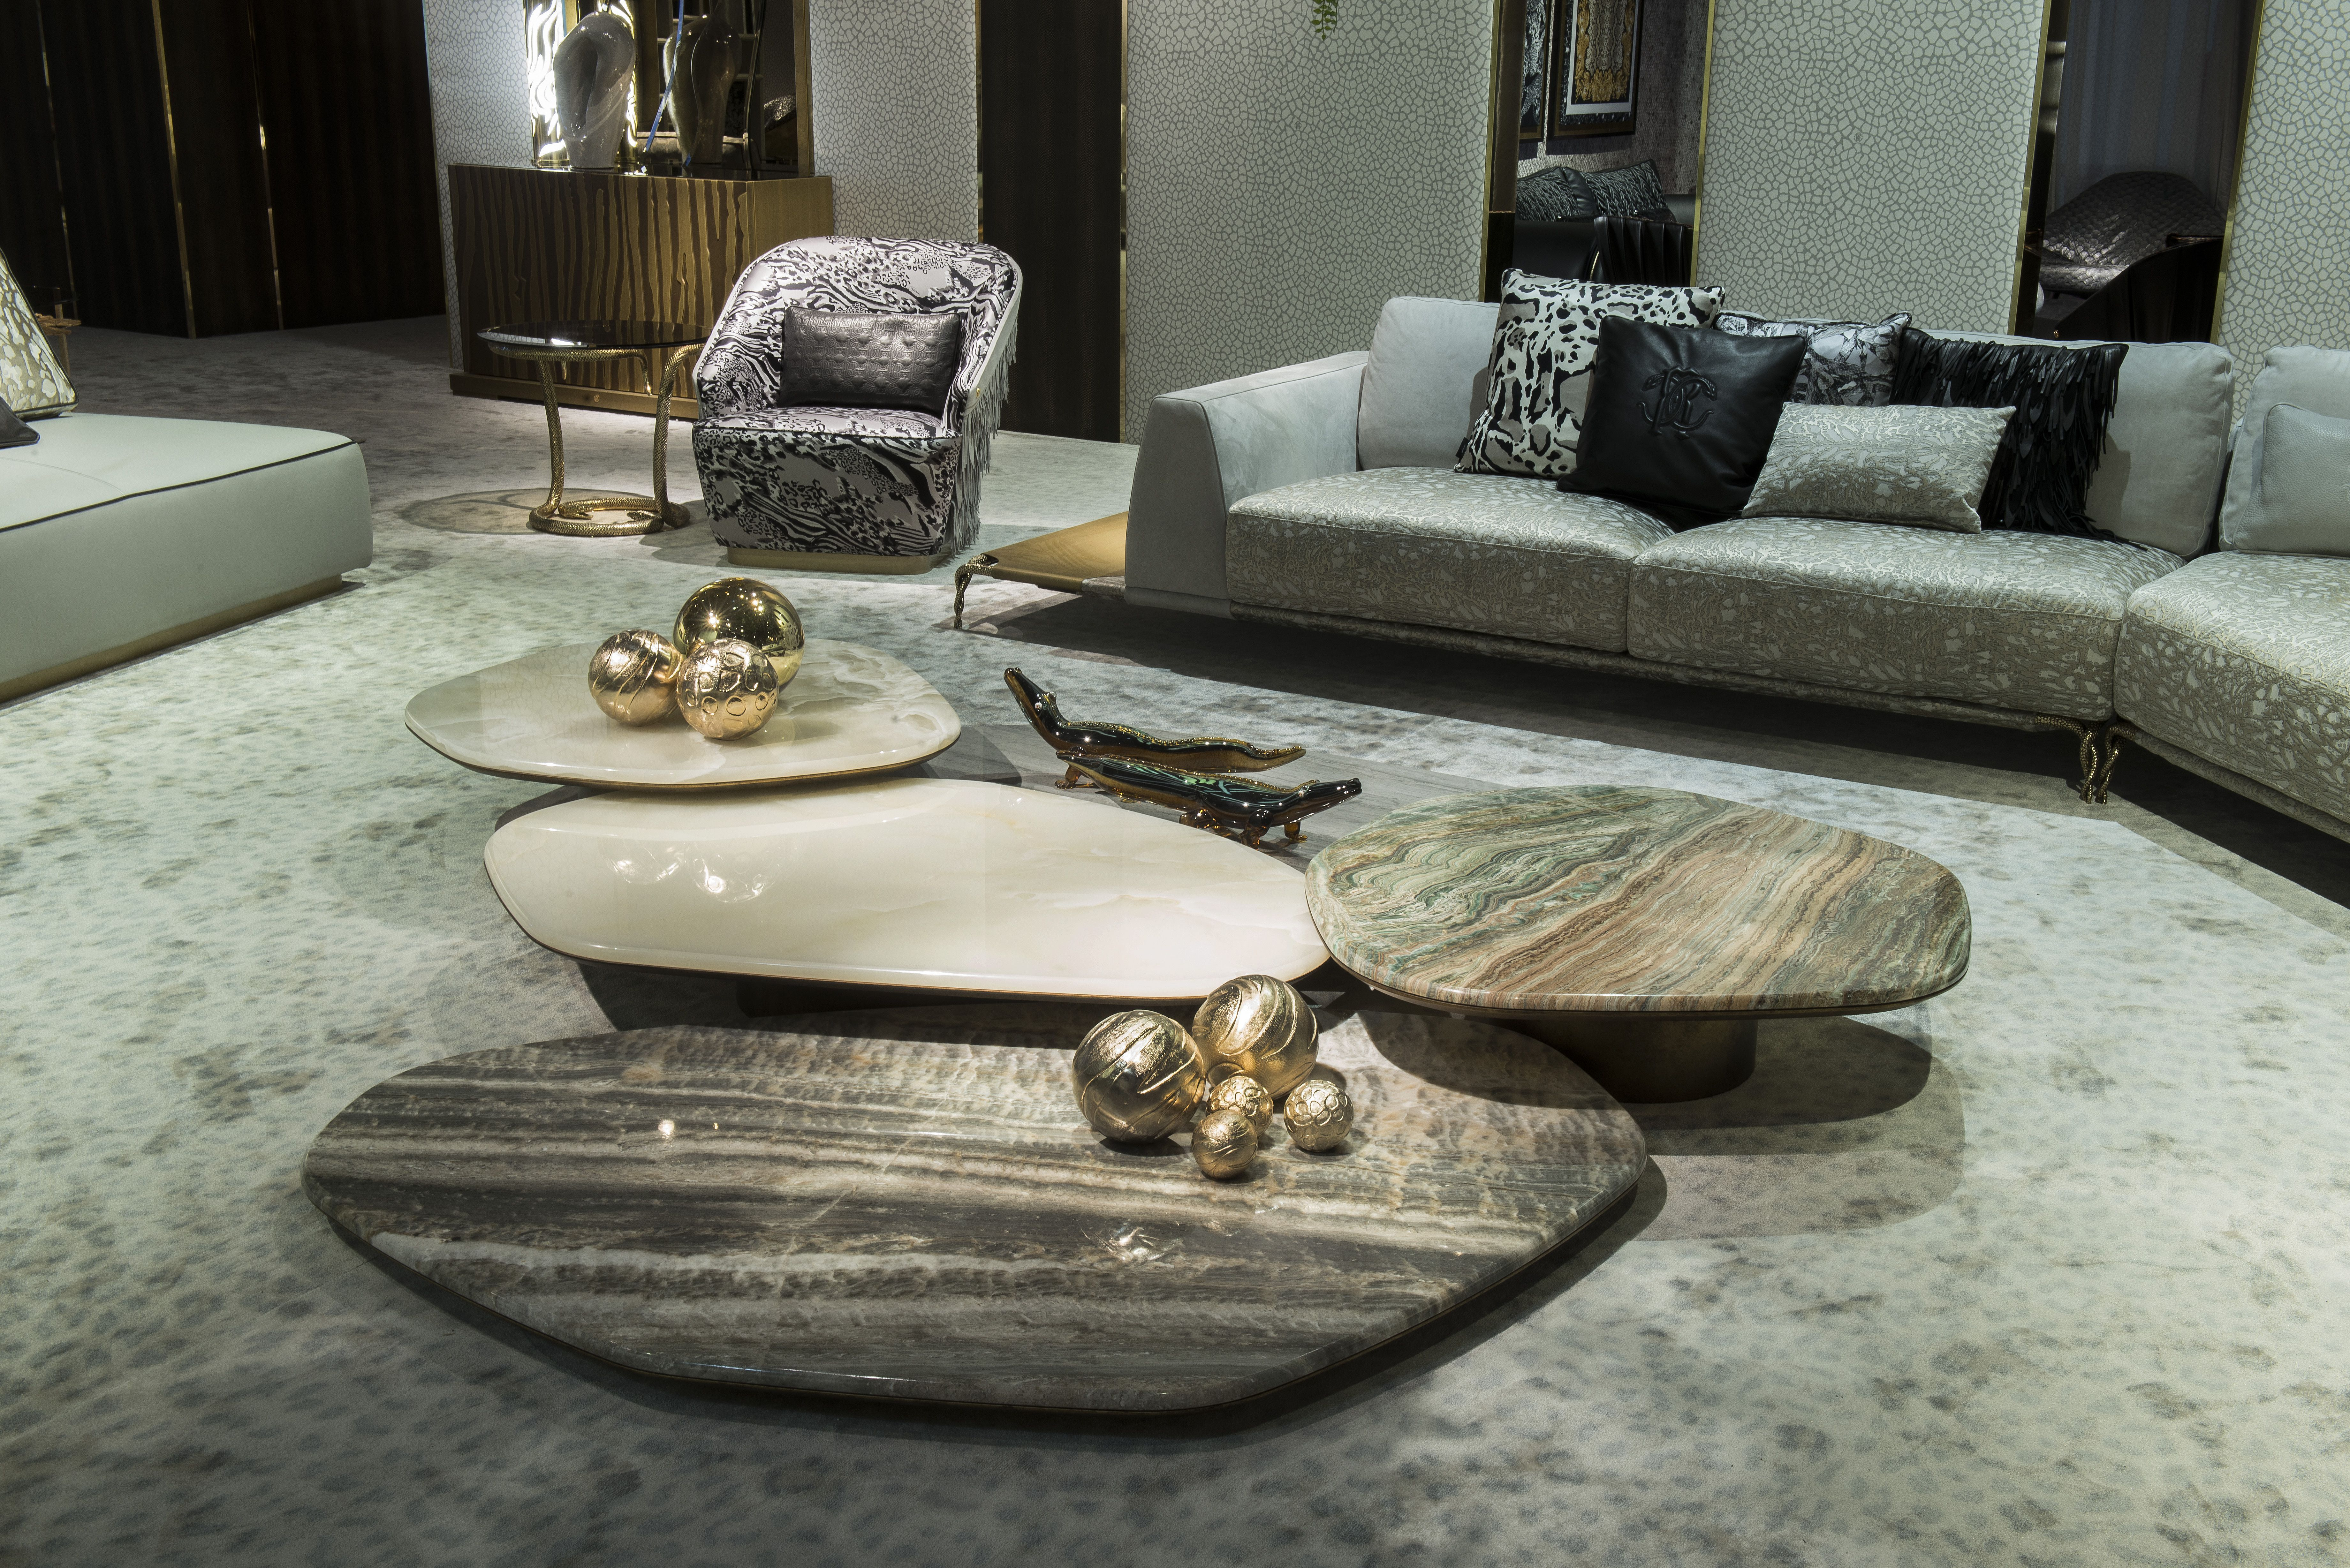 Luxury Furniture From Roberto Cavalli Home Interiors 2019 Collection Available Exclusively From Ki With Images Italian Home Decor Marble Tables Living Room House Interior